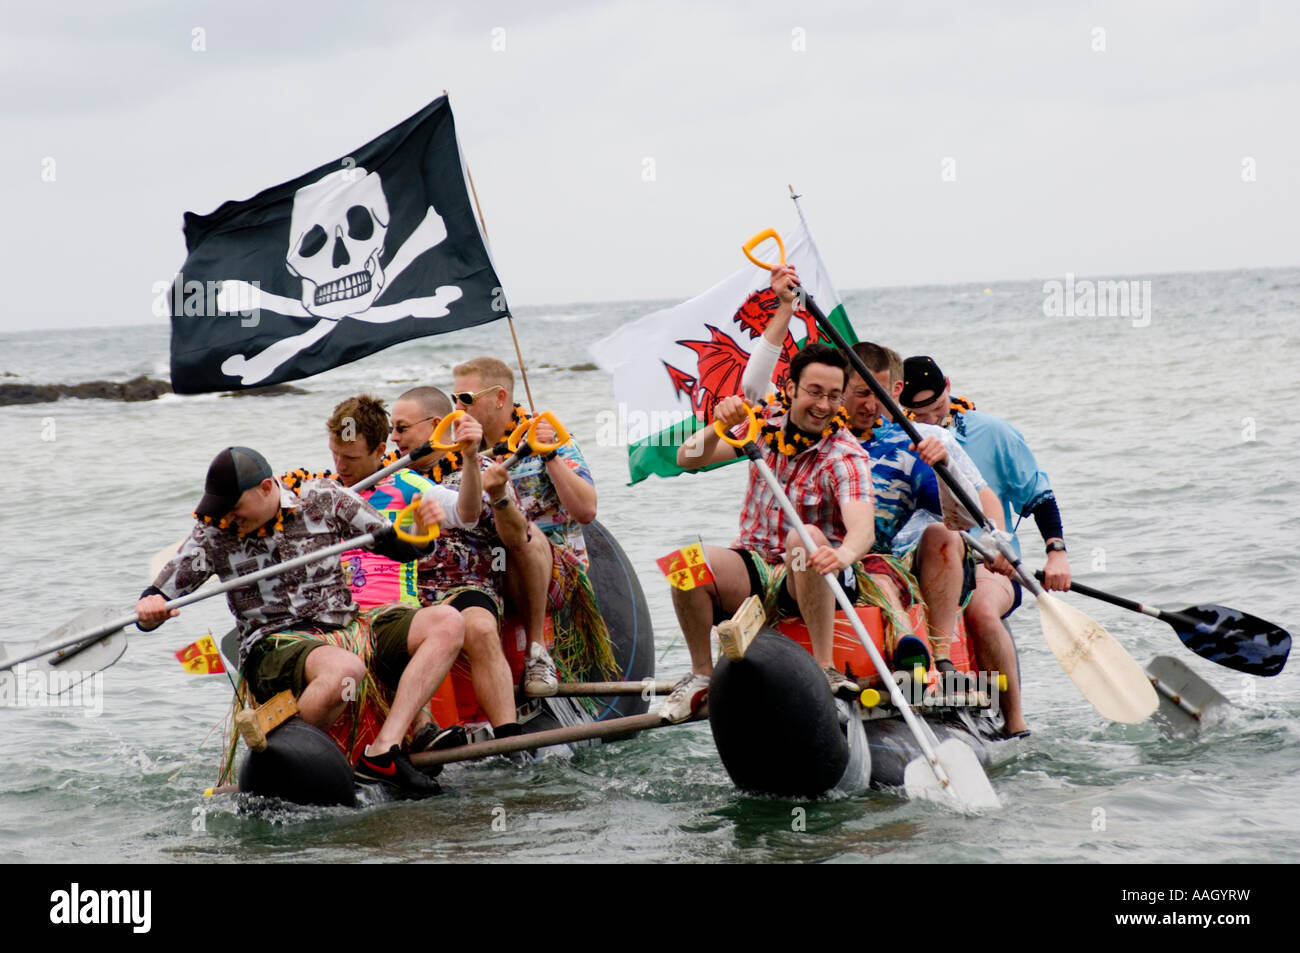 Group of men paddling a home made raft flying pirate flag and welsh banner in a charity race Aberystwyth Ceredigion, - Stock Image